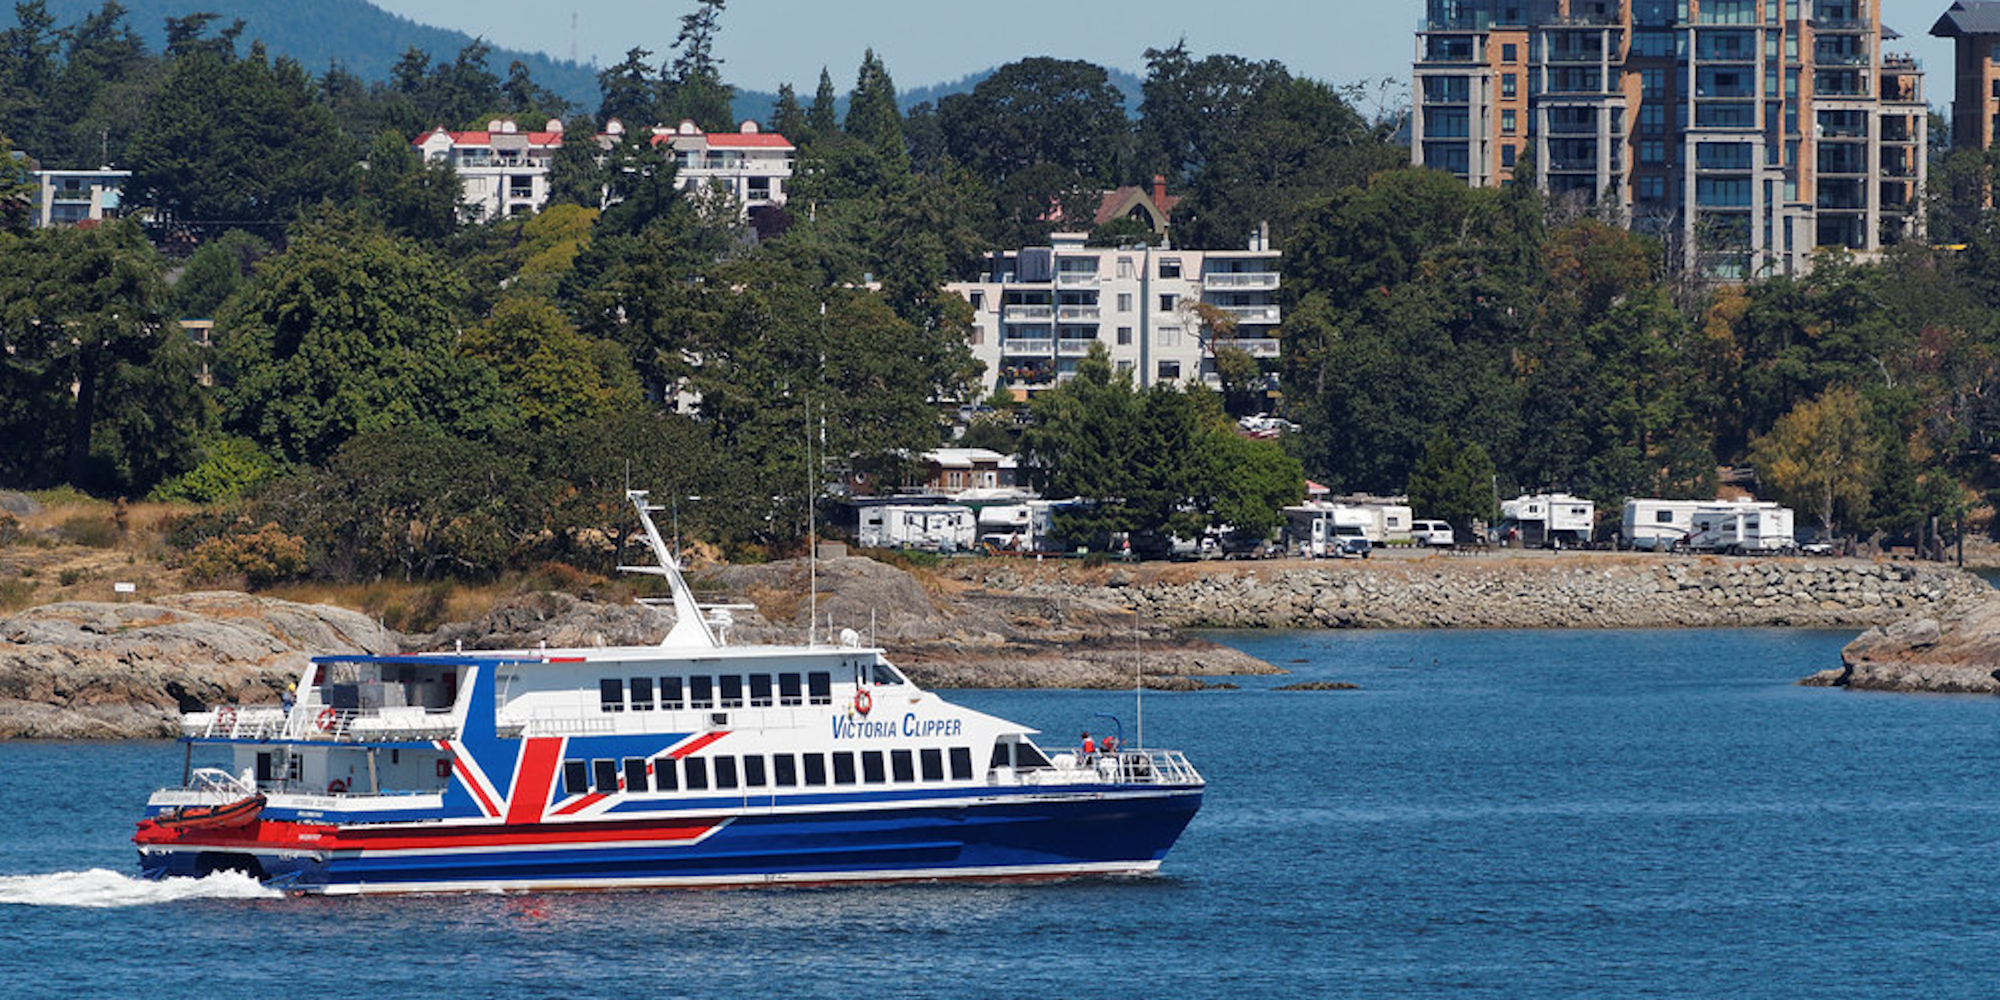 """It Was A Very Difficult Decision"": The Clipper On Why It Sealed Off Victoria's Link to Seattle"